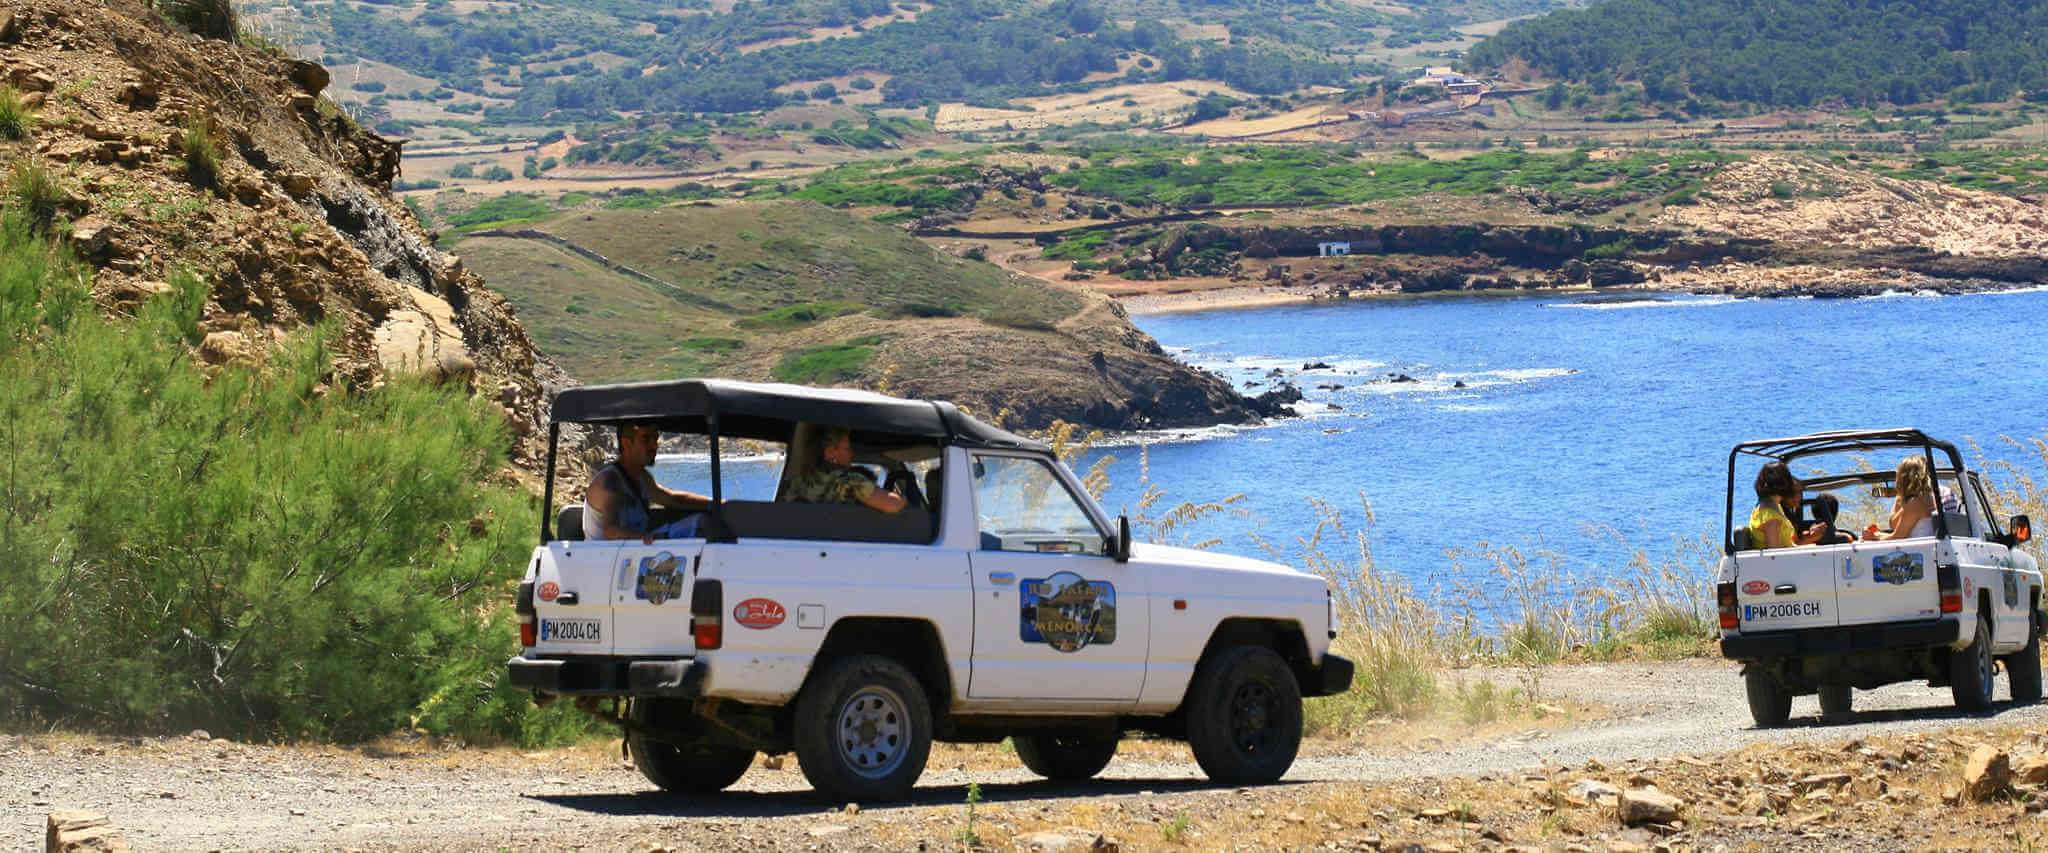 Jeep Safari in Menorca